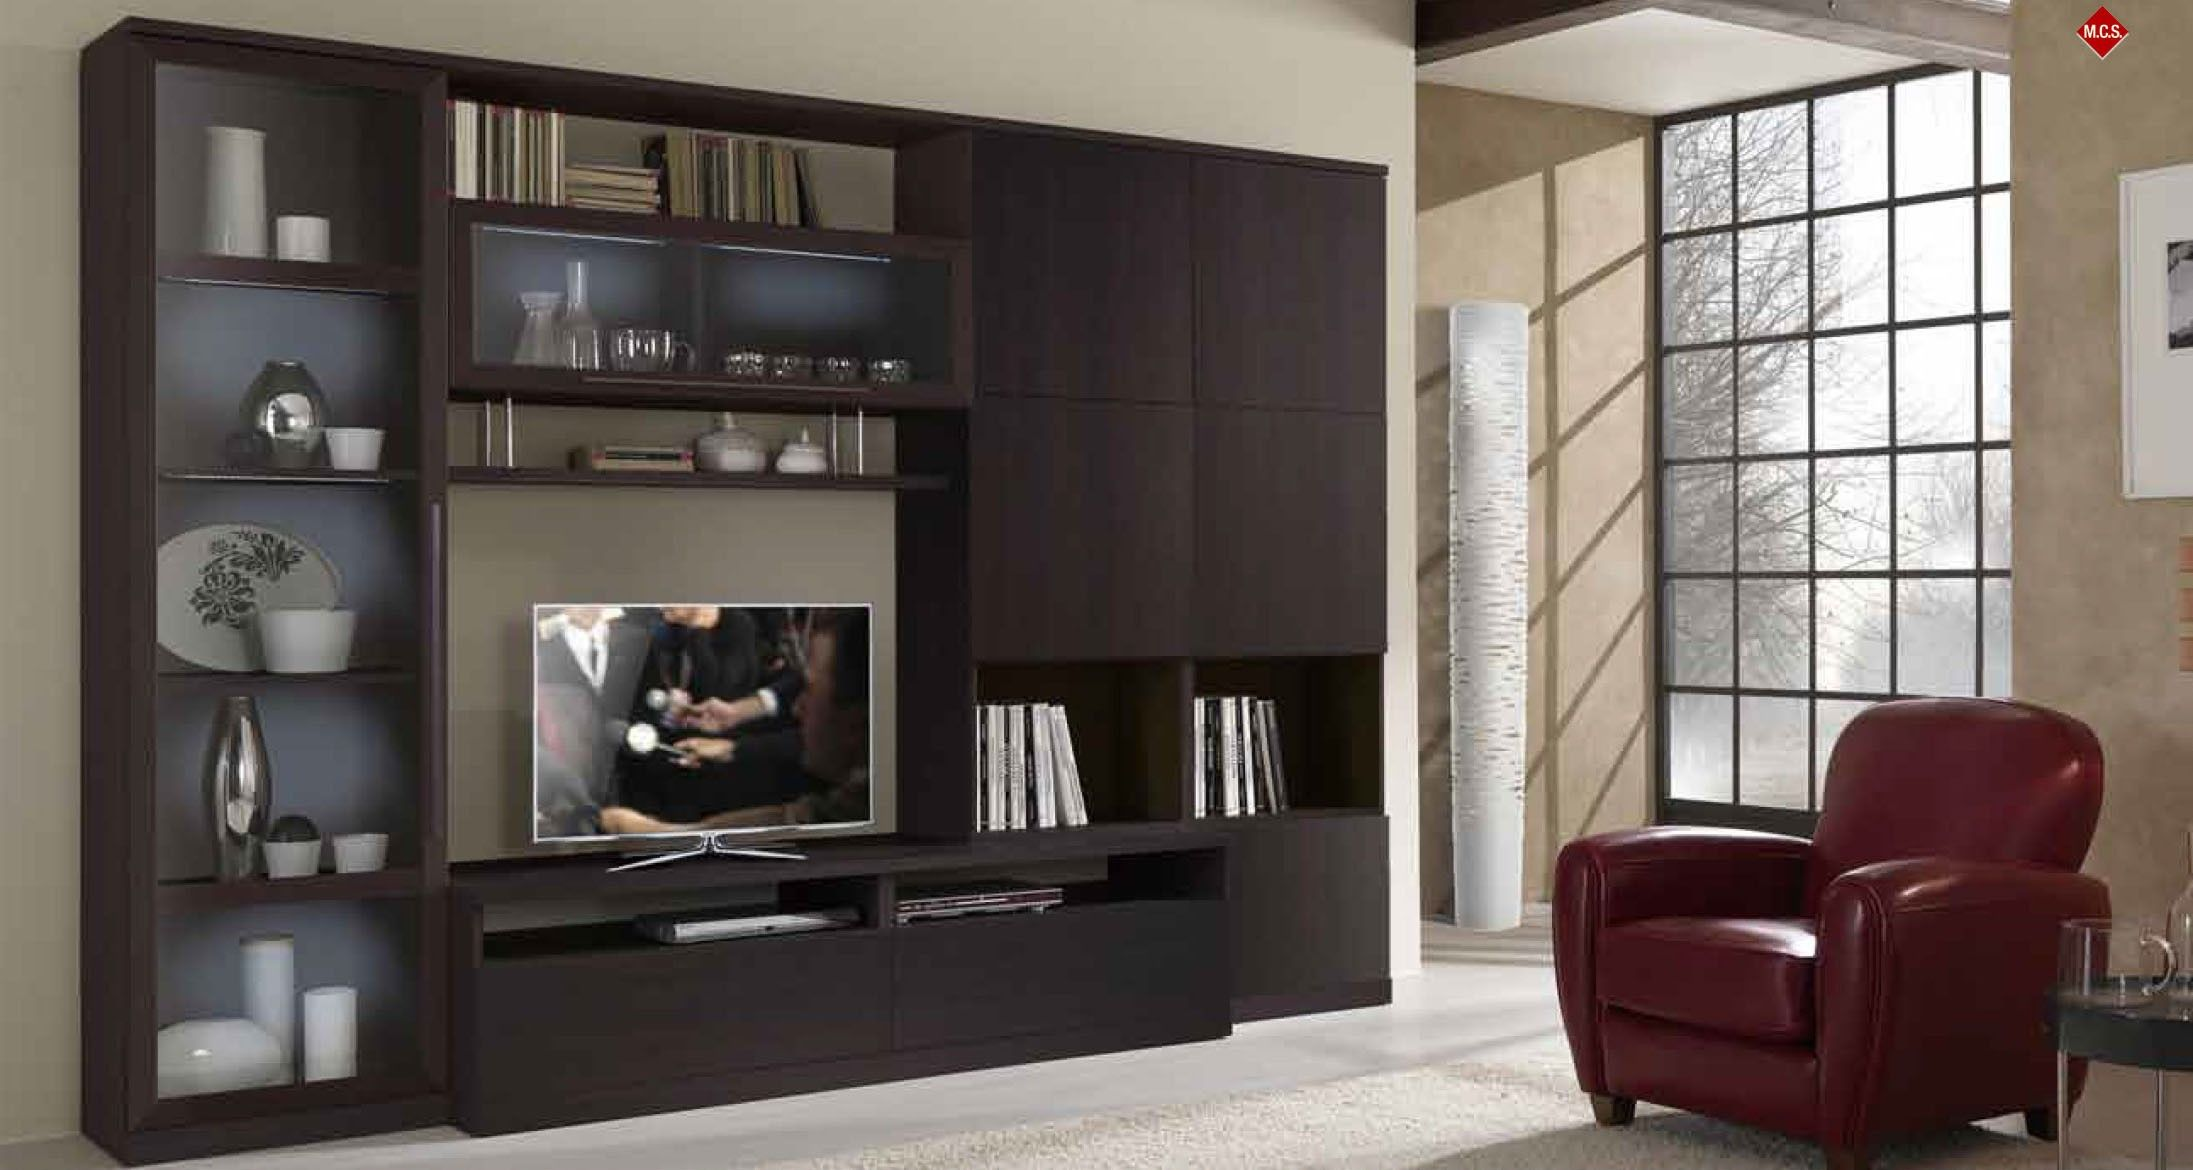 home built in bar and wall unit ideas magnificent living room contemporary stylish modern design